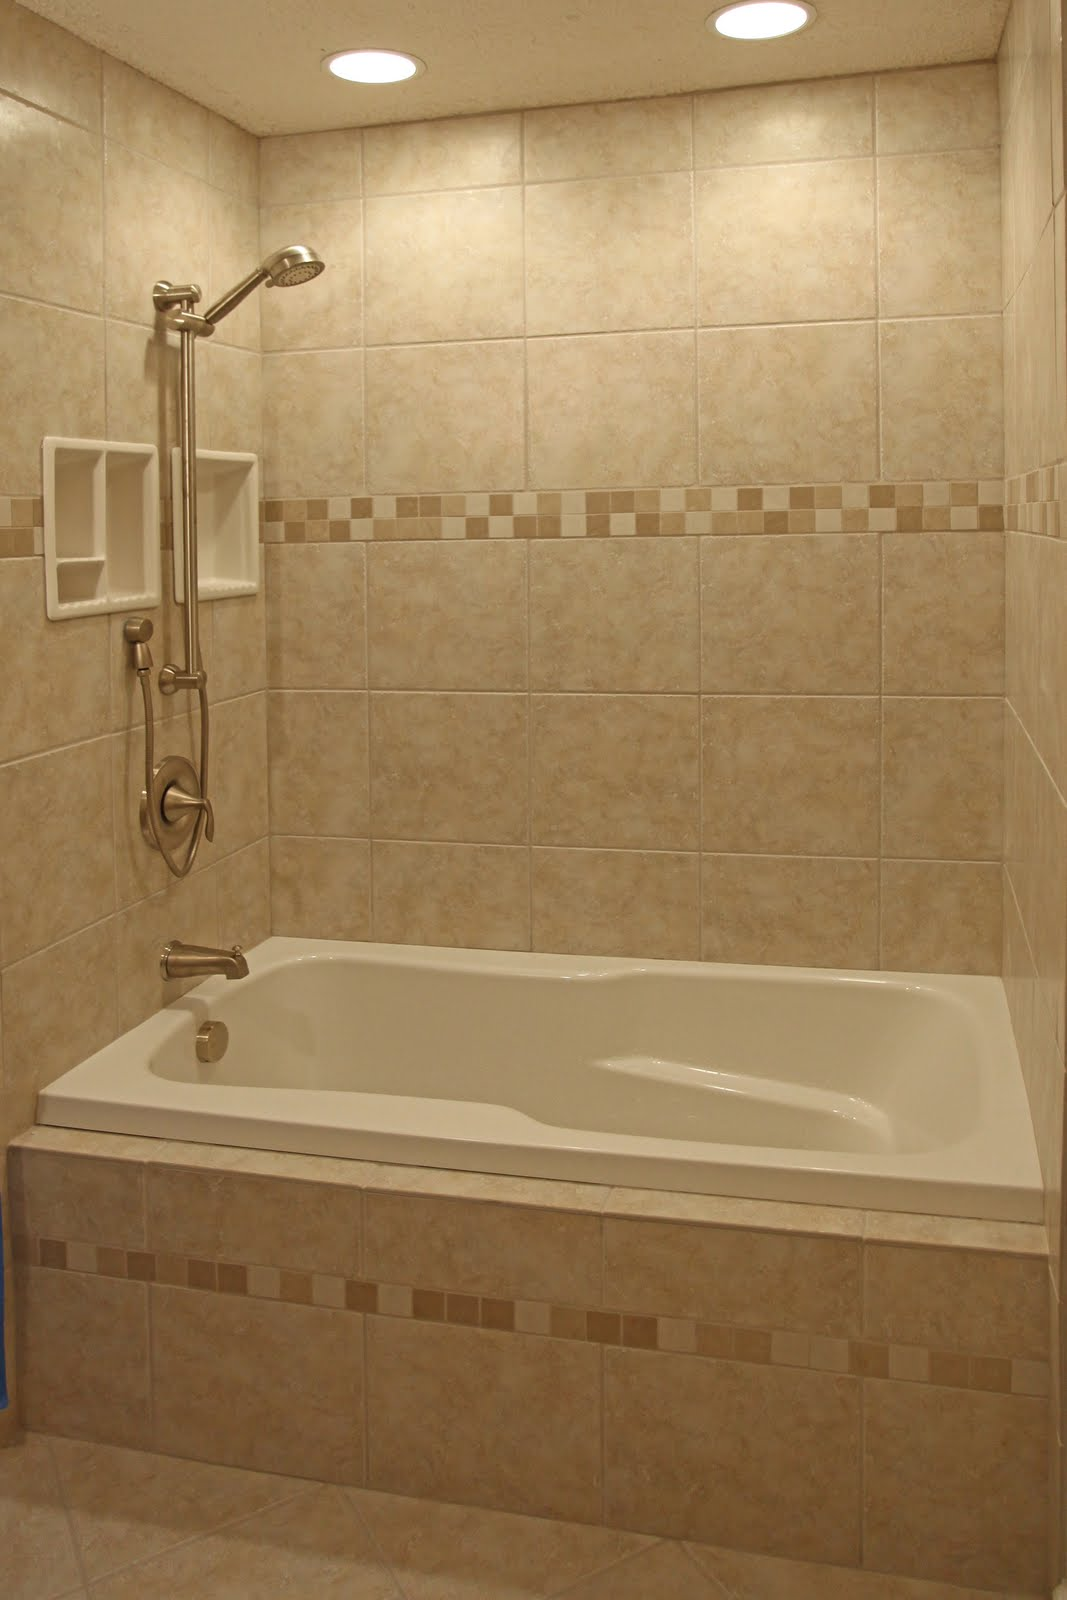 ceramic-tile-bathroom-shower-design-ideas